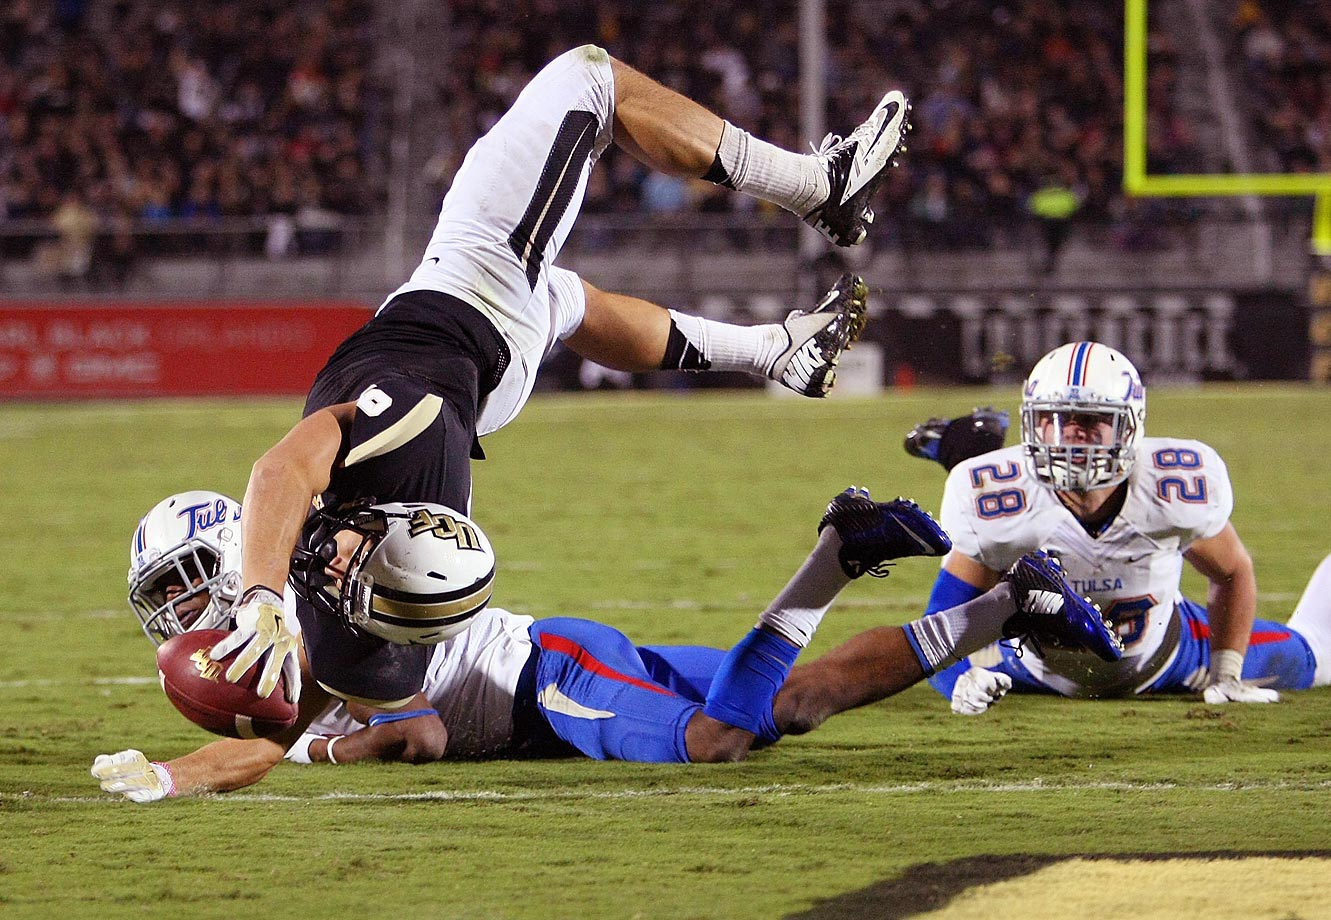 J.J. Worton of the UCF Knights leaps for a touchdown over James Flanders of the Tulsa Golden Hurricane. UCF won 31-7.